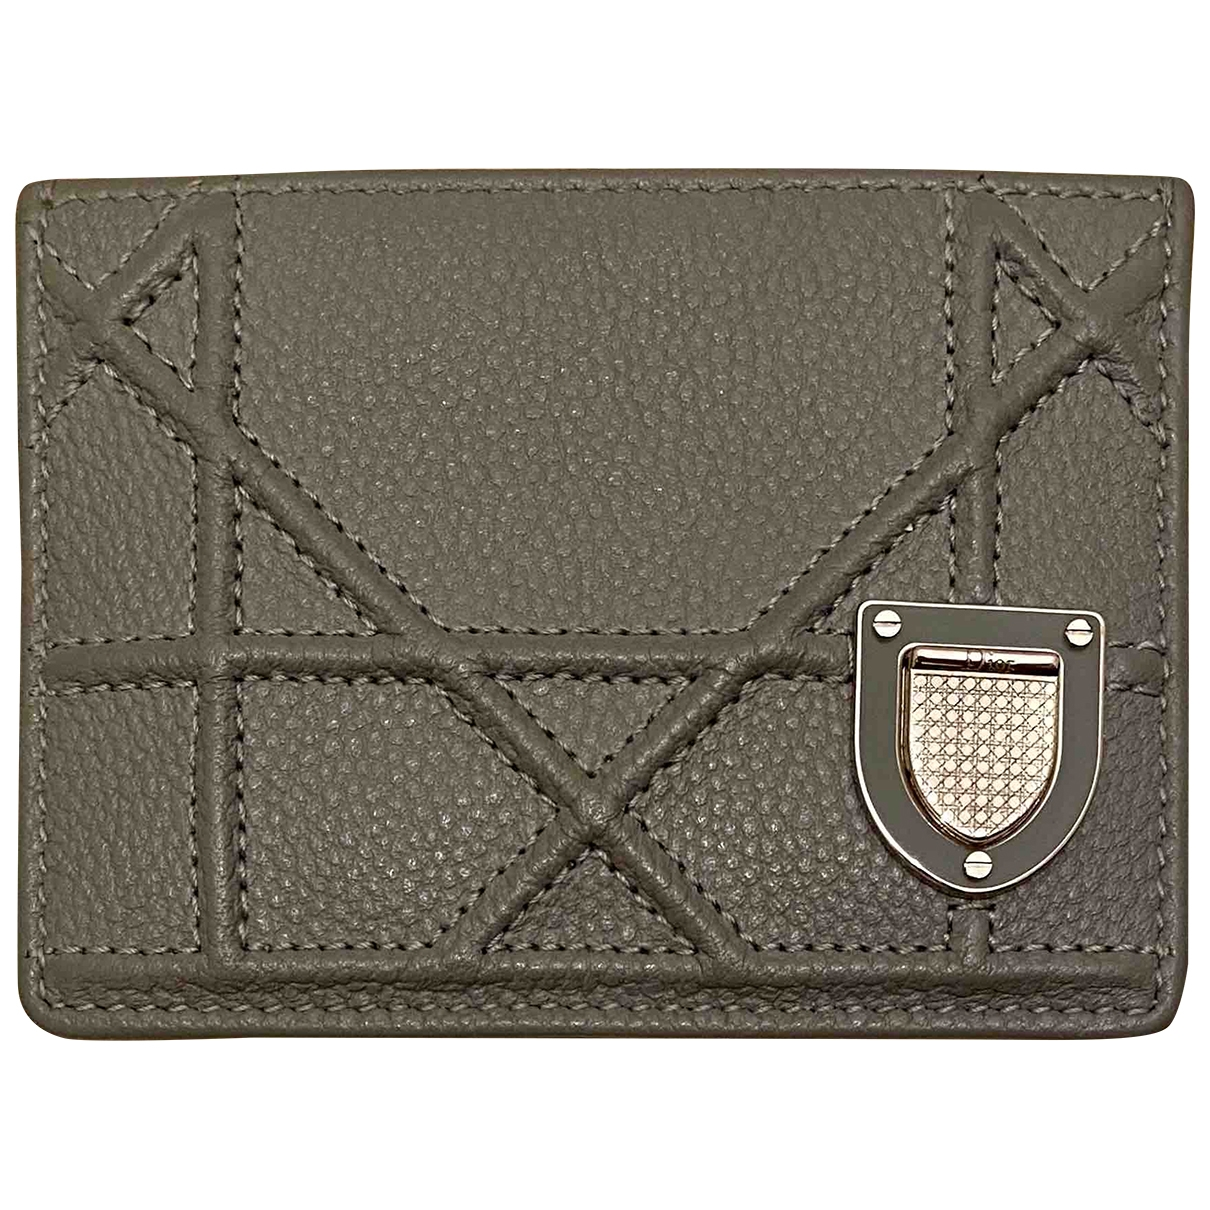 Dior Diorama Grey Leather Purses, wallet & cases for Women \N